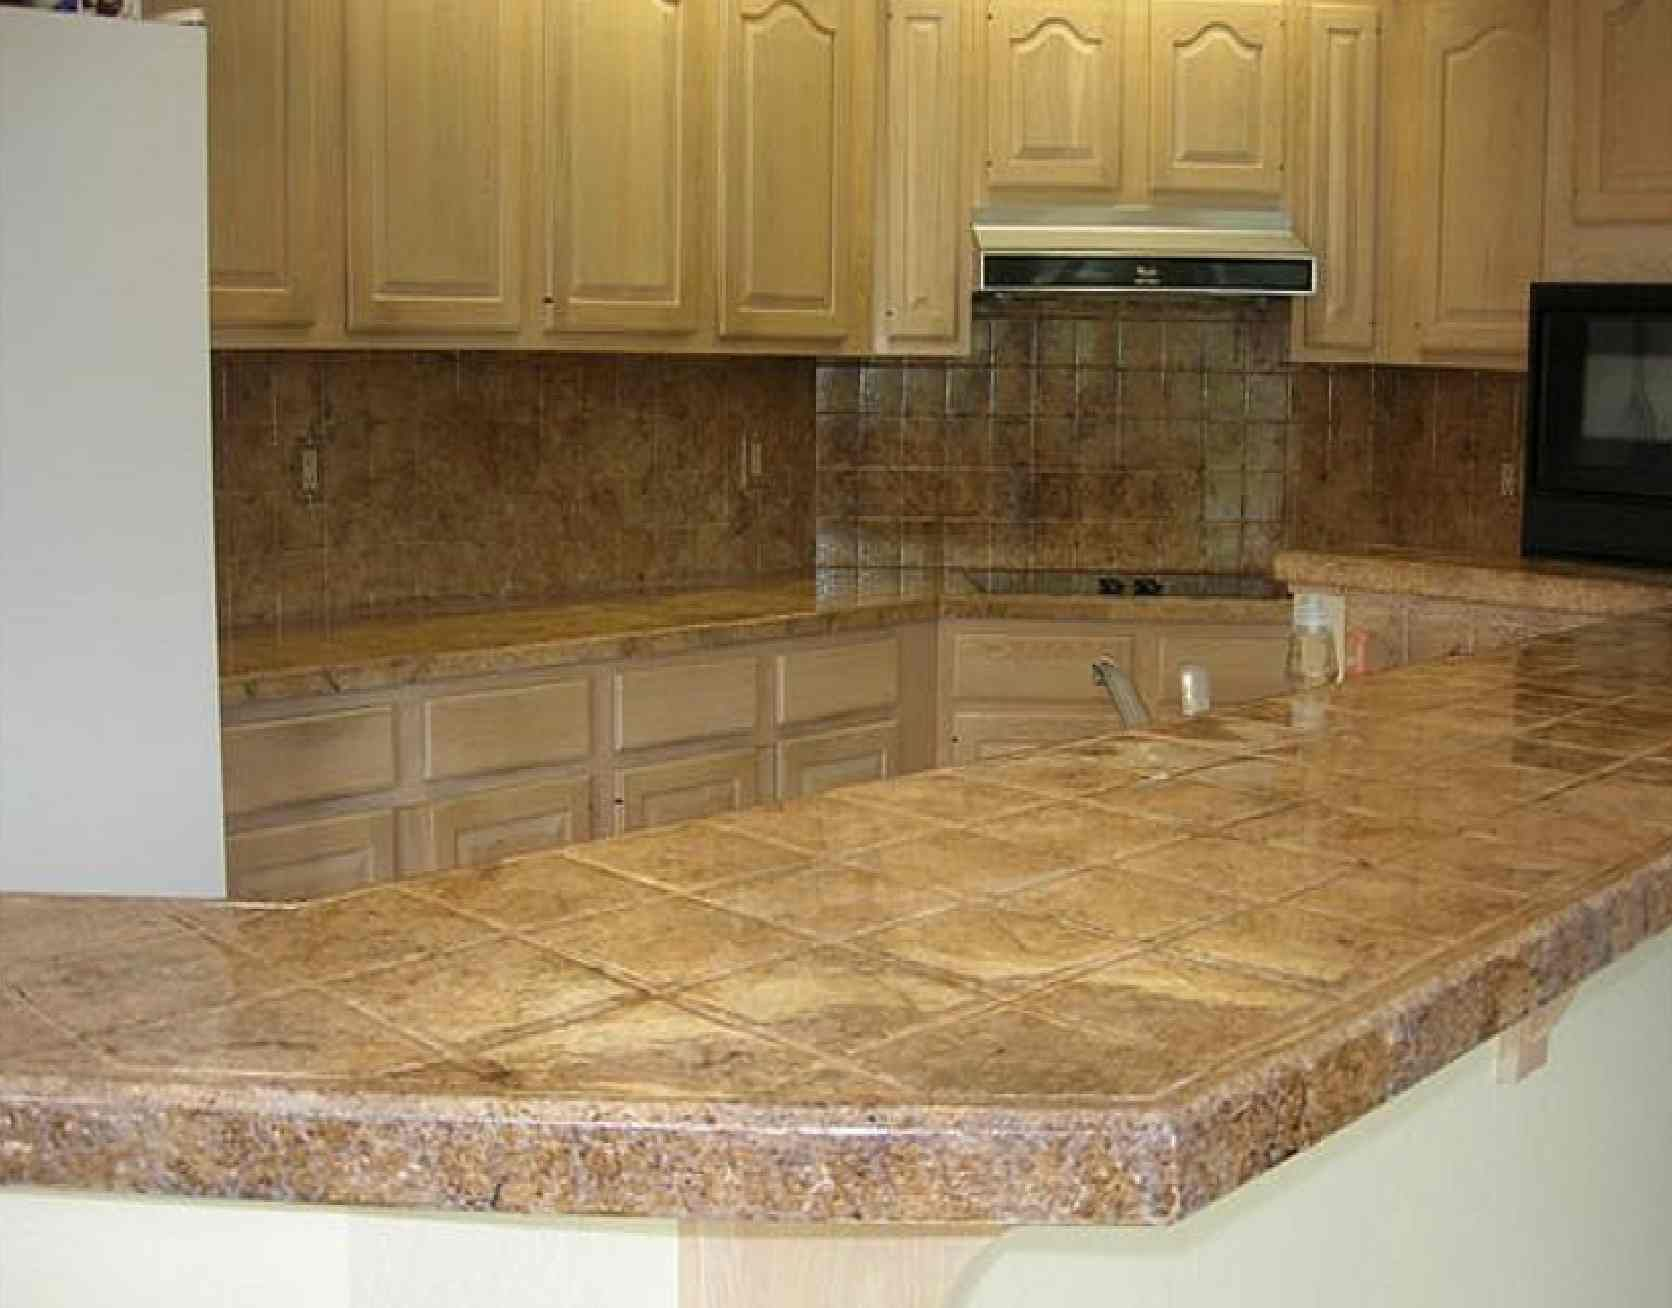 Granite Tiles For Kitchen Porcelain Tile Backsplash Gallery Just Finished Up A Ceramic